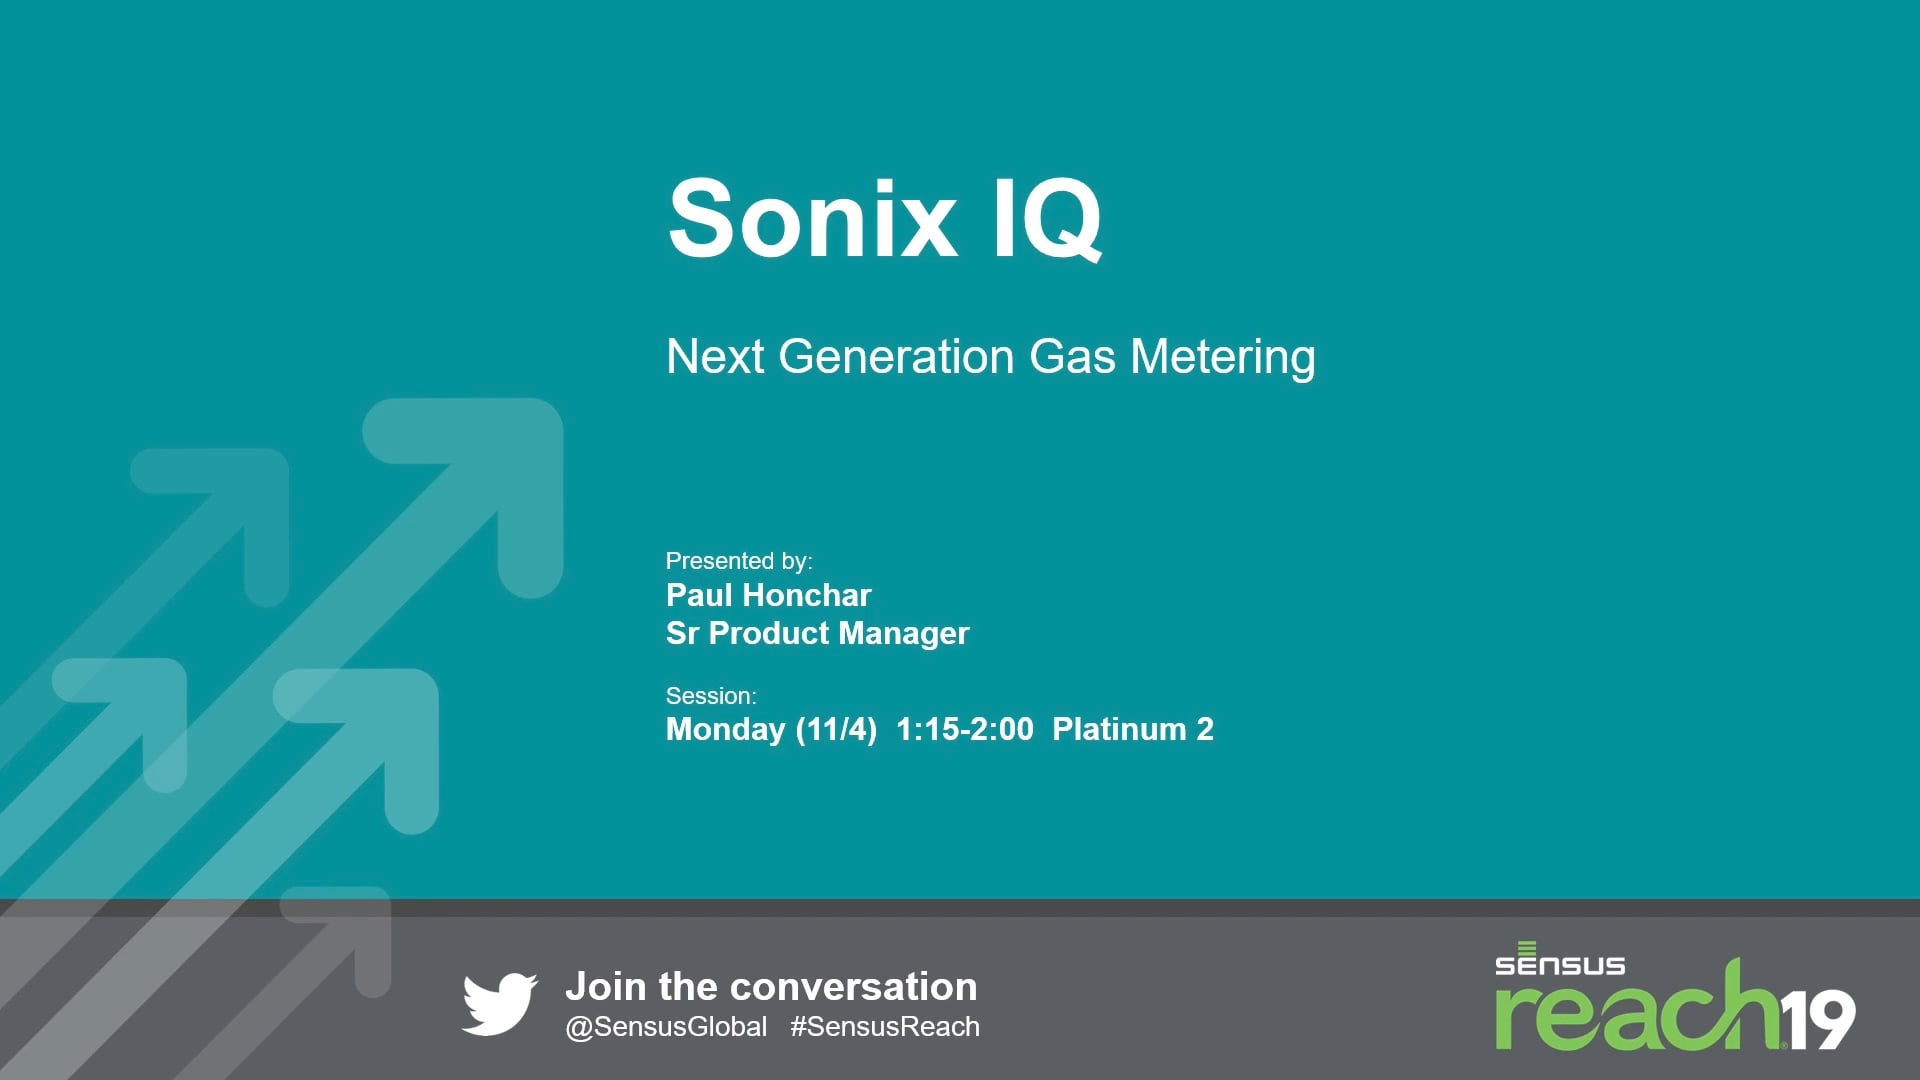 Sonix IQ – The Next Generation of Ultrasonic Gas Metering